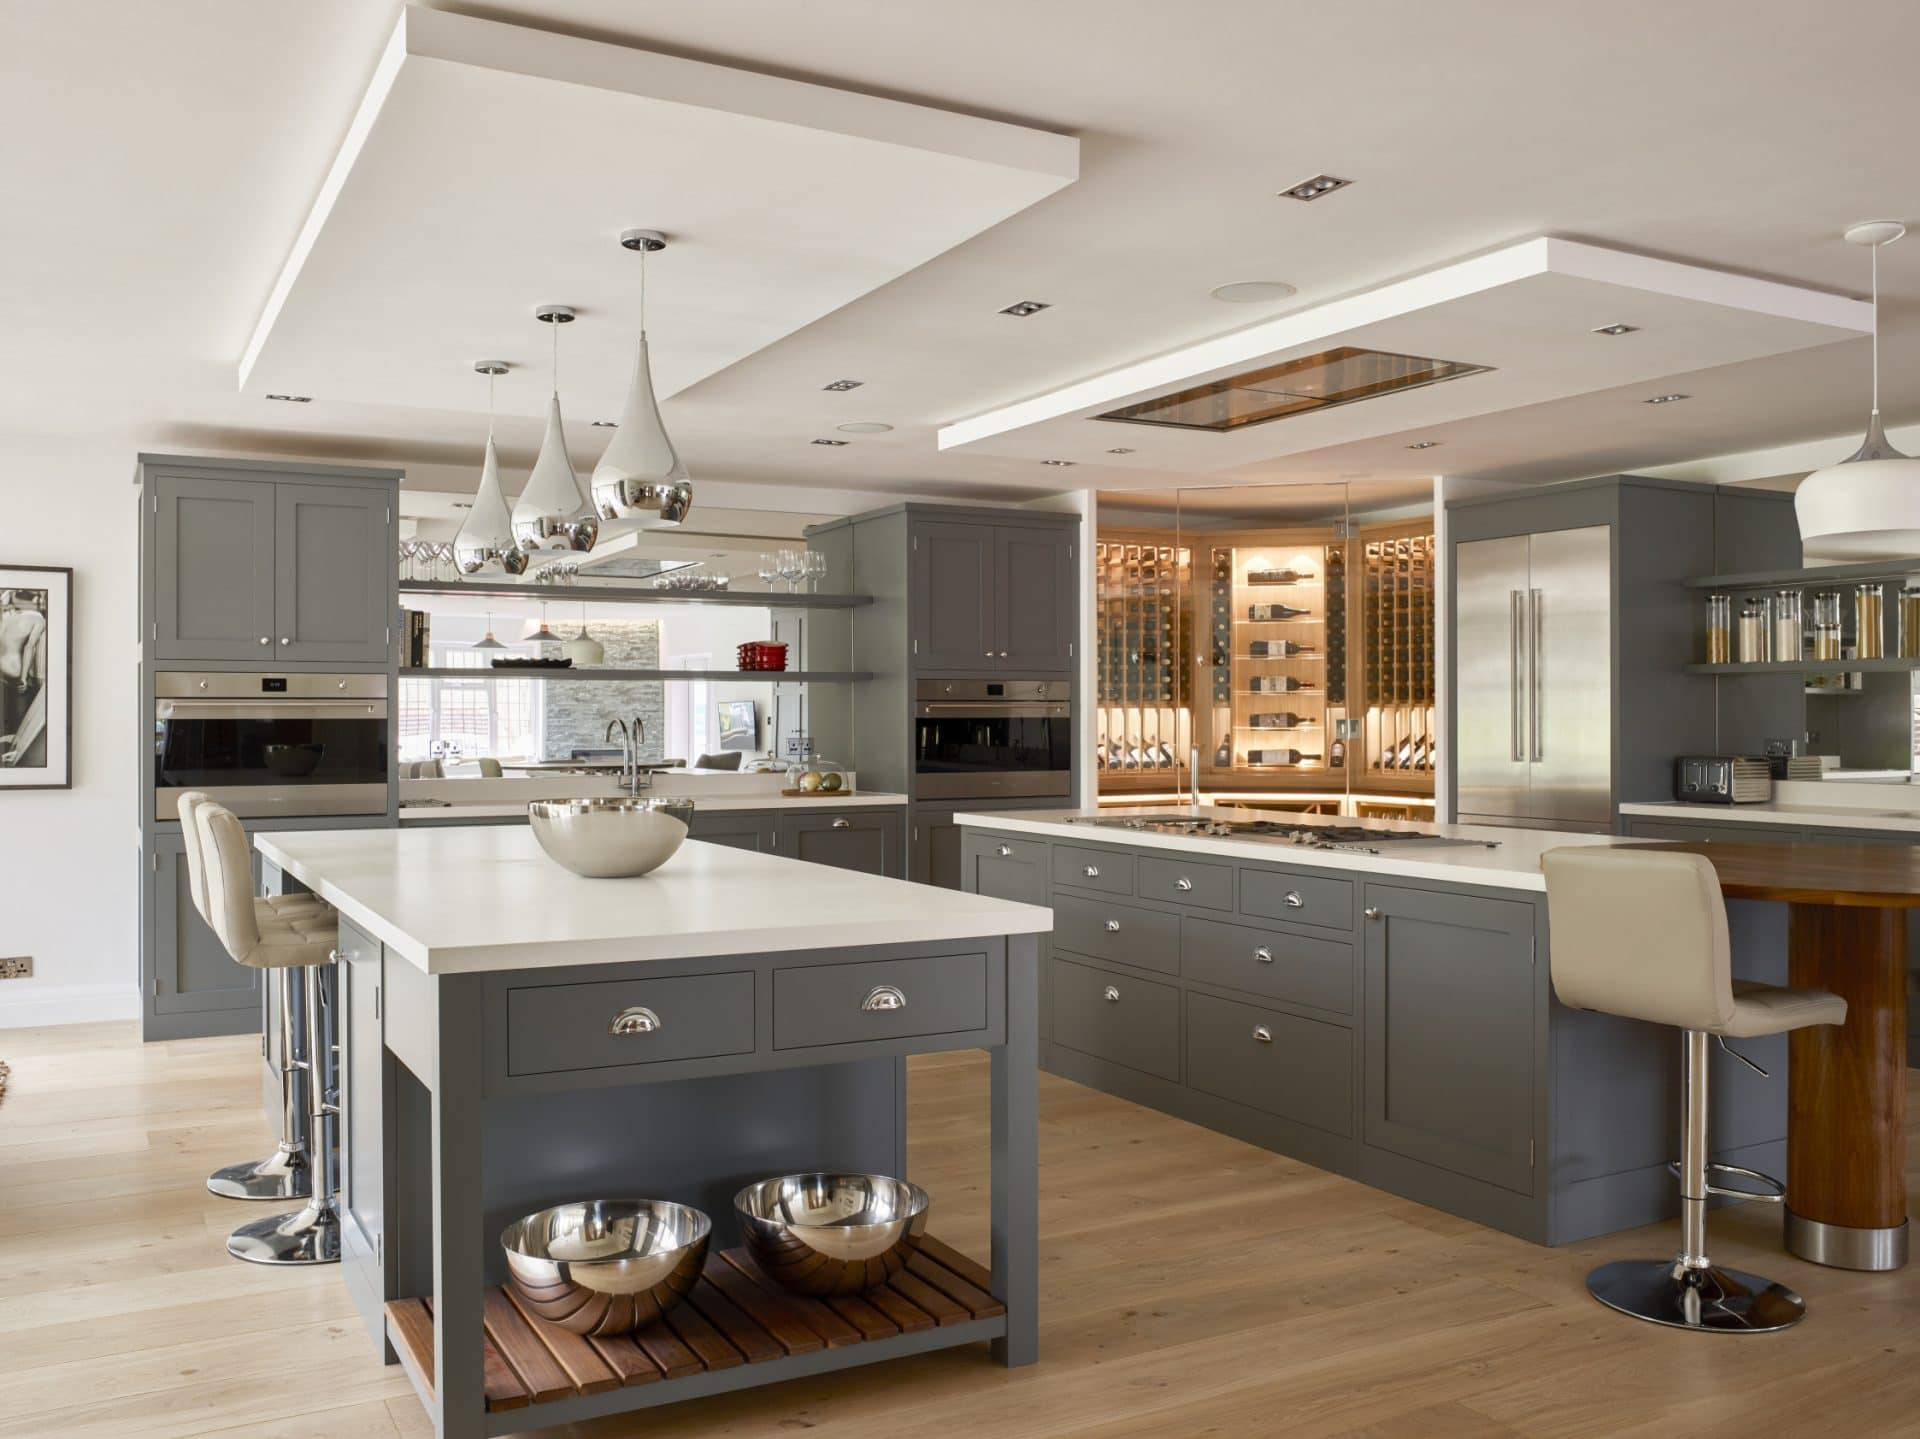 20 Stunning Kitchen Ceiling Ideas for your next makeover